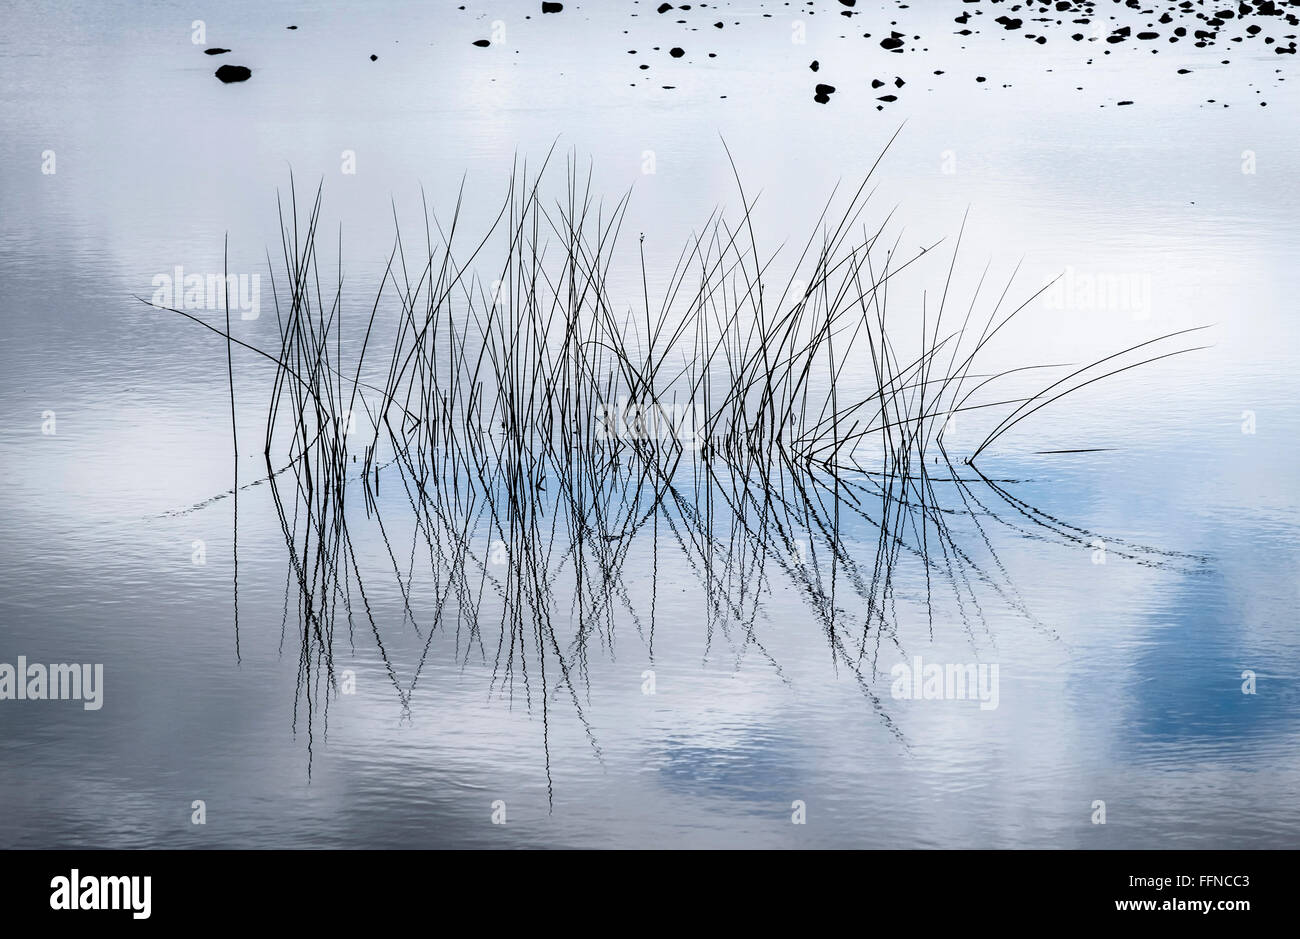 reeds abstract reflection calm still tranquil art - Stock Image